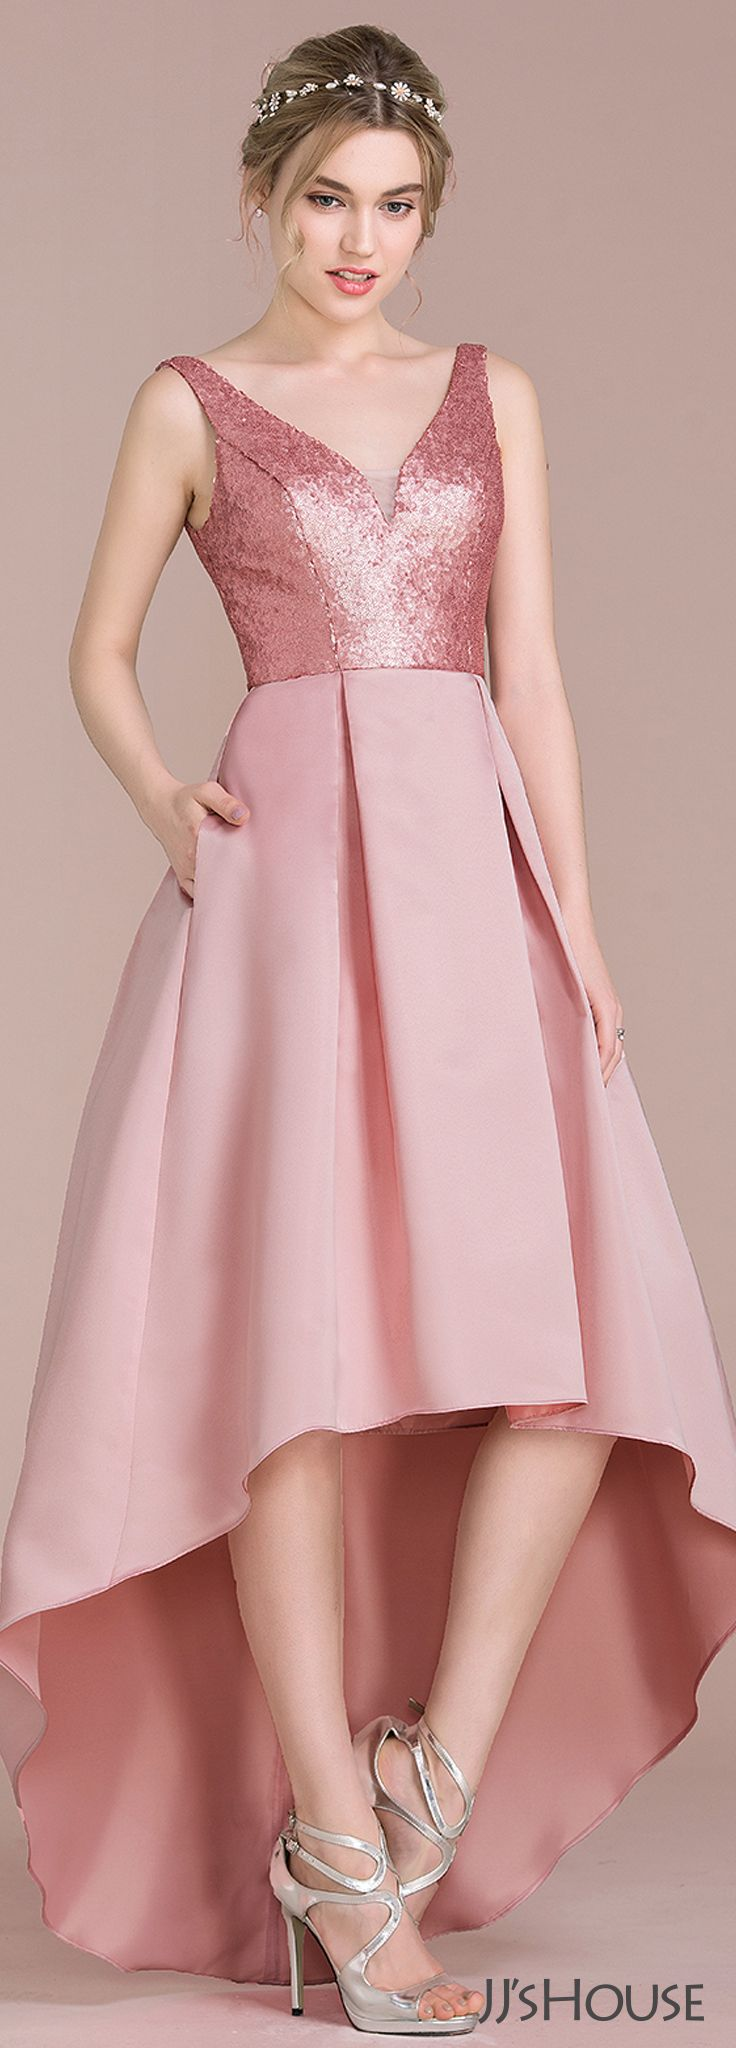 532 best Vestidos images on Pinterest | Long prom dresses, Party ...